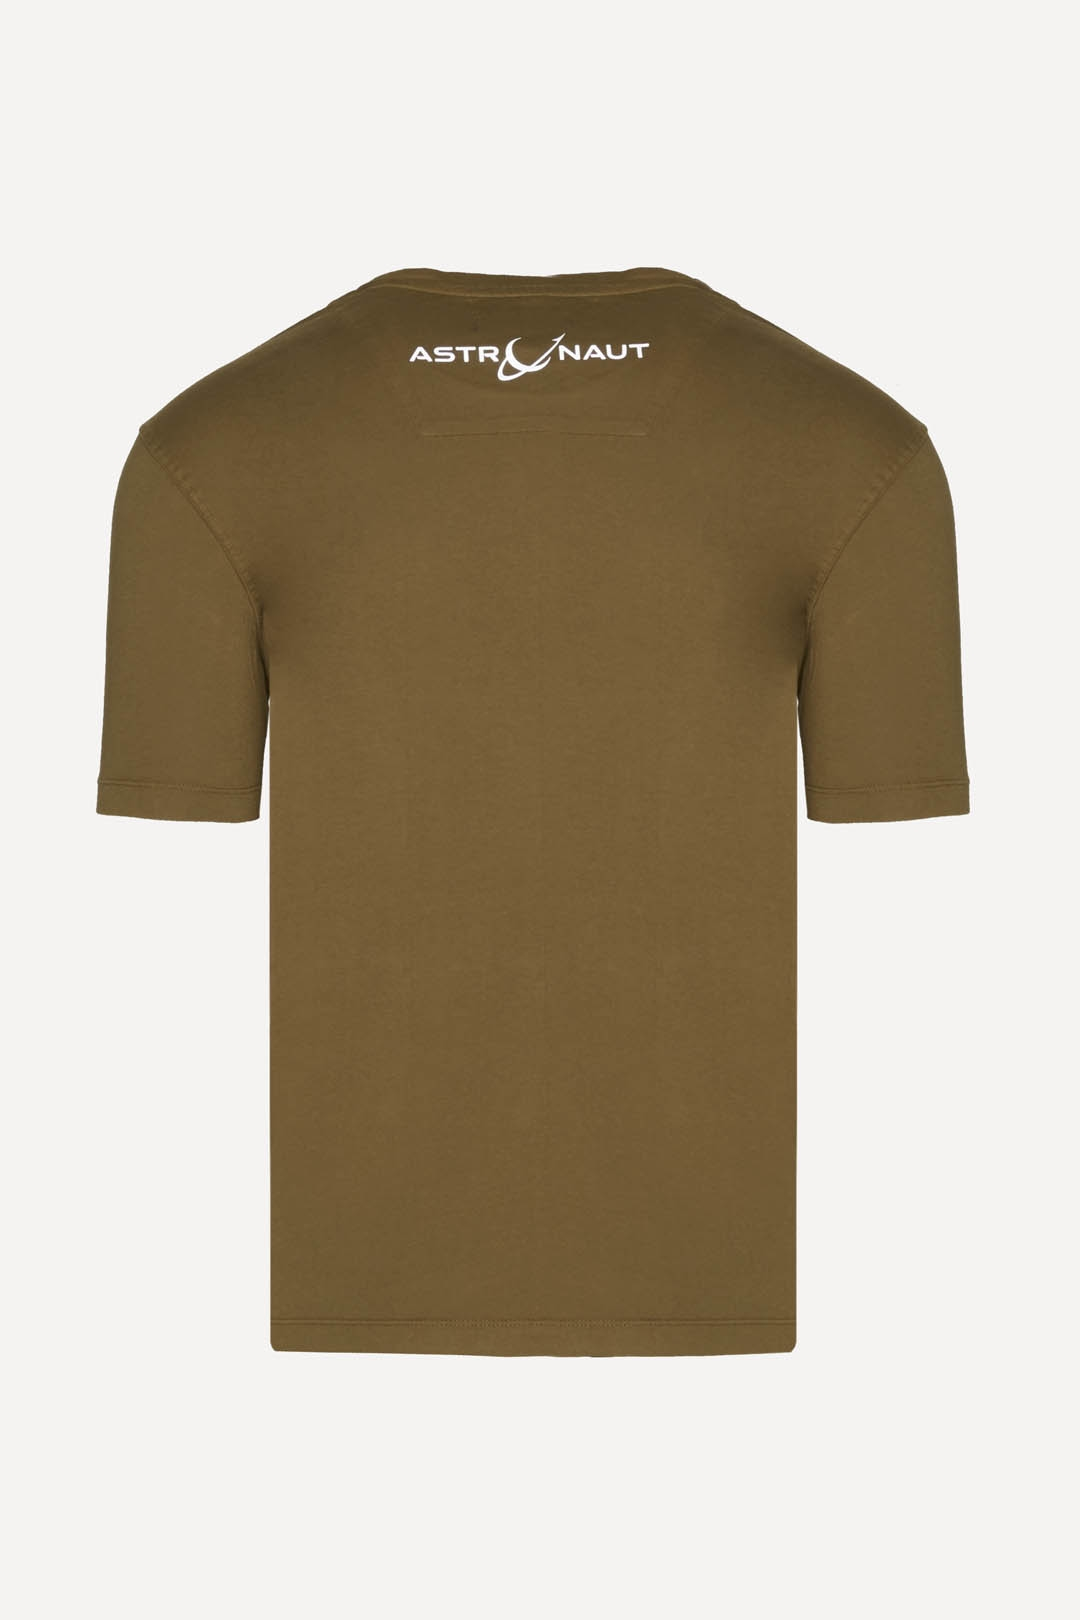 Astronaut T-shirt with reflective logo   2